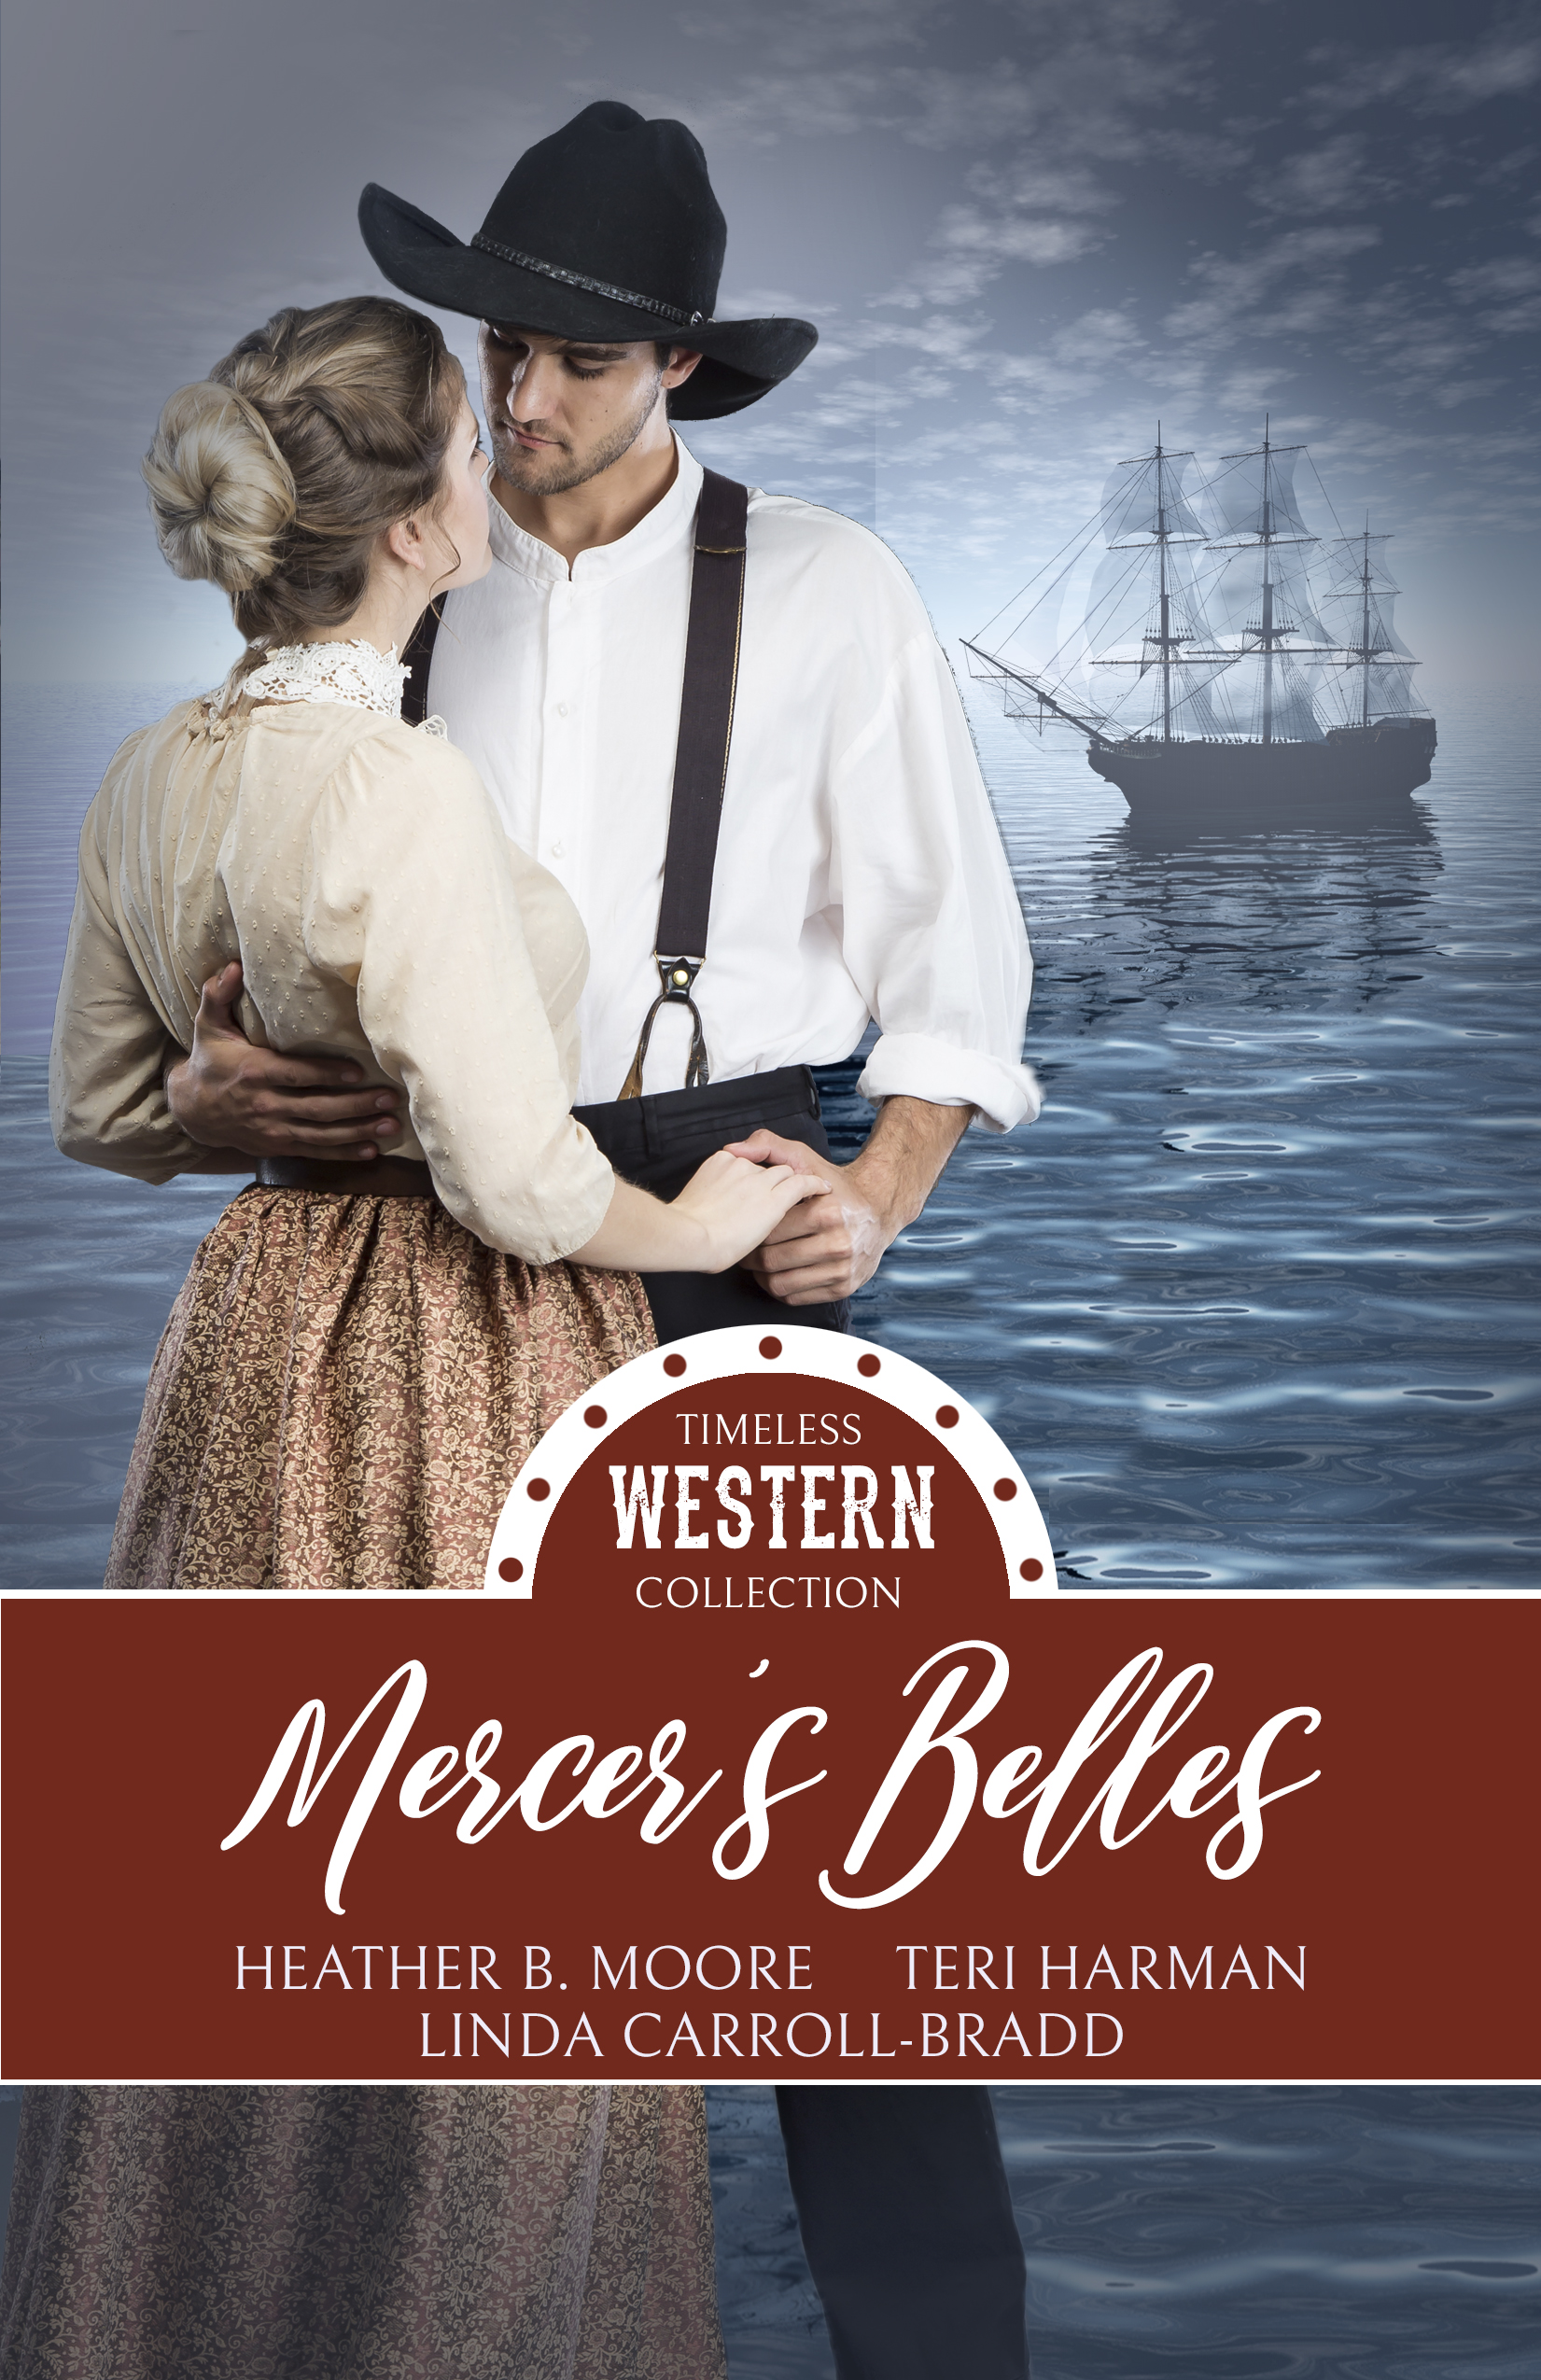 Mercer's Belles  - When Mr. Mercer sends out a call for single women to travel to Seattle for teaching positions and the potential of forming marriages, 45 answer his call, becoming Mercer's Belles.The following collection is based on based on true events during the 1860s: ONE DANCE by Heather B. Moore:When Harriet Silverman arrives in Seattle for a fresh start and a new teaching position, the last person she expects is to meet is a fisherman who seems to be every place she turns. As she gets to know Caleb Munns, Harriet discovers they are a perfect match--for friendship. They both have solid reasons for not pursuing marriage. But as their paths continue to cross, Harriet begins to see a completely different future than she imagined.A JOURNEY TO LOVE by Teri Harman:Cora, a nurse and surgeon's assistant who learned her skills during the war, joins Mercer's expedition in hopes of finding a job in the West. She's a widow and does not want to marry again. When she meets Albert, a surgeon who is traveling on board the Continental, she finds herself intrigued. Yet, Albert's determined to open his own practice in Seattle, make it a success, and has no plans to look for a wife. But the more time Cora and Albert spend together on the voyage, the more they are drawn to each other.A FARAWAY LIFE by Linda Carroll-Bradd:Teacher Sorcha Geraghty yearns for a fresh start after the death of her beau and a factory accident maimed her hand. Asa Mercer's call for teachers for Washington Territory provides a new opportunity, and she joins his ocean-going expedition. Upon arrival, she learns of the expectation for the women to become wives to the many bachelors. Sorcha needs a new plan and fast. Logging manager Lang Ingemar wants a teacher to provide basic English instruction to his Swedish-speaking crew and keep them out of trouble when they go to Seattle. When he convinces Miss Geraghty to relocate to the logging camp, he has no idea the ways his life will be changed.